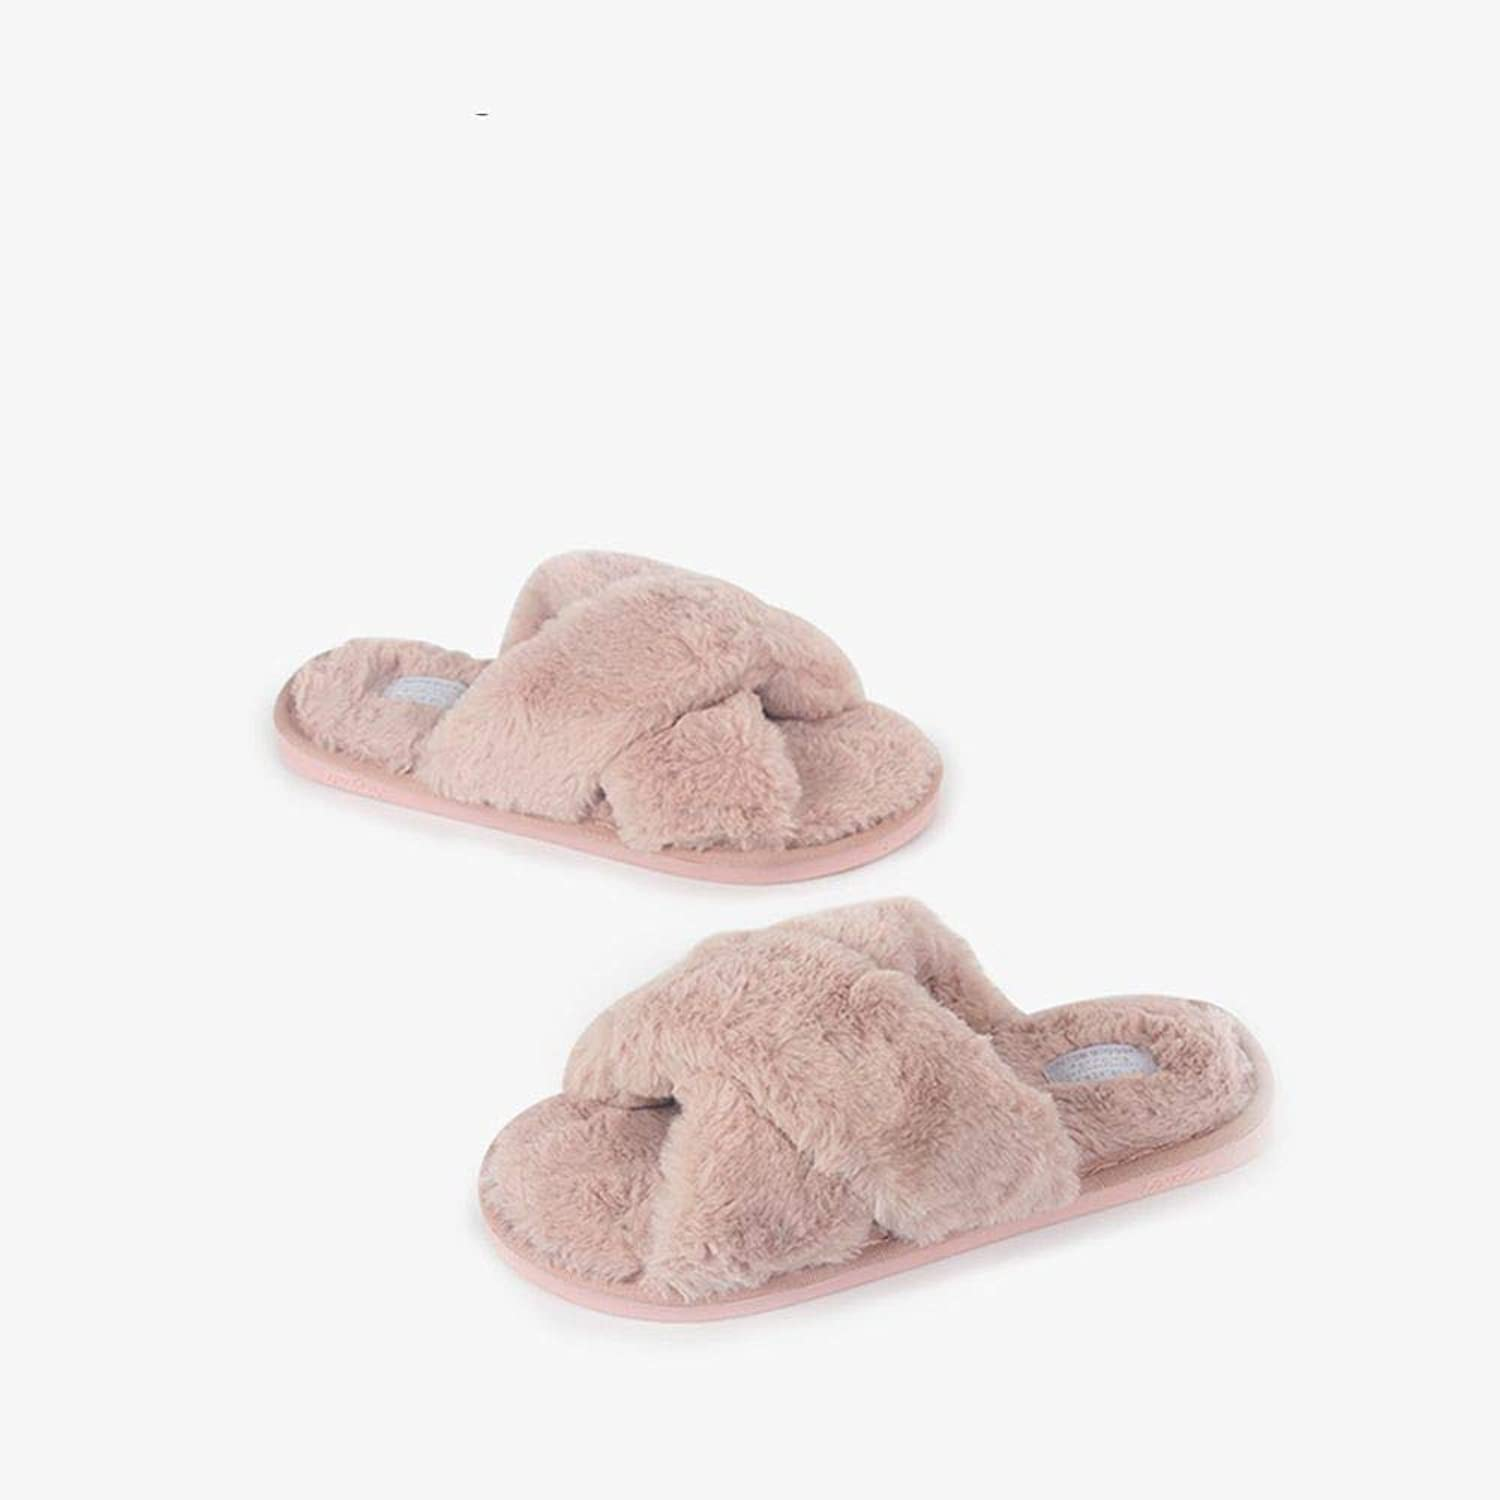 AILIUJUNBING Home Cotton Slippers, Women's Home Slippers, Slippers, Autumn Winter Indoor Slippers Cozy Pretty